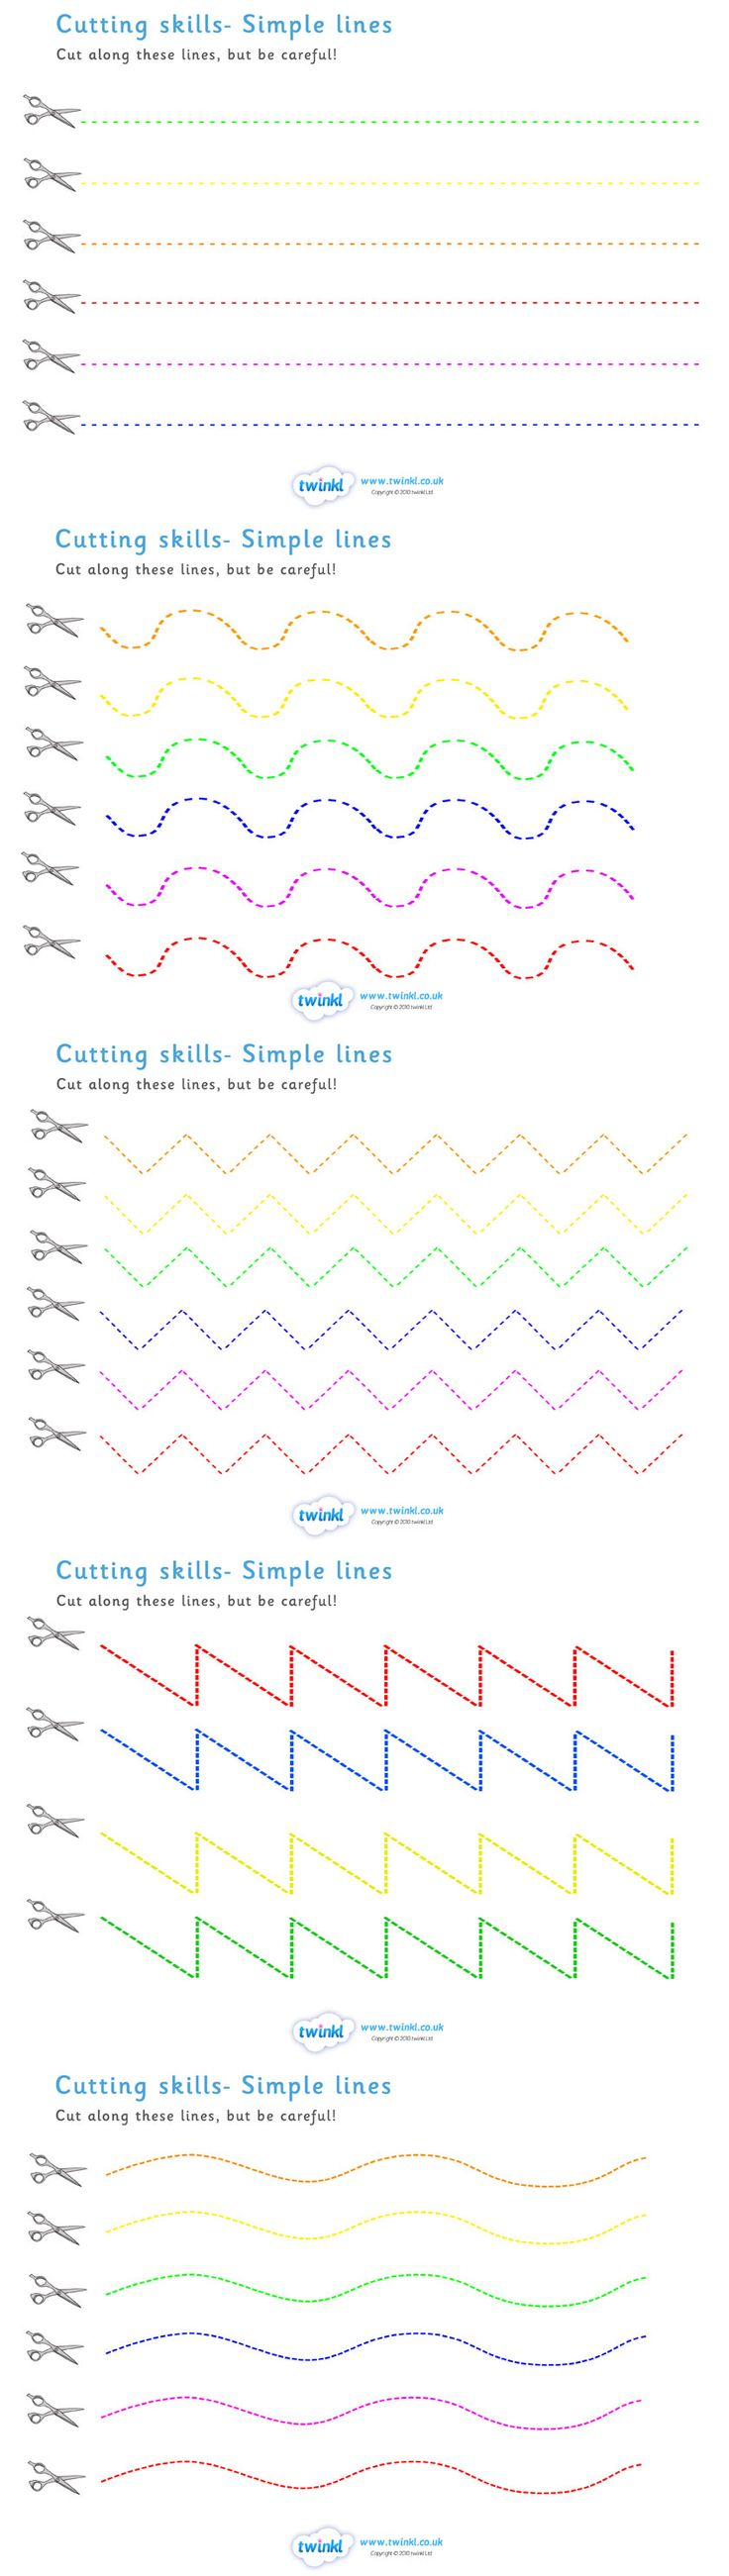 Twinkl Resources >> Cutting Skills Worksheets (Colour Lines) >> Thousands of printable primary teaching resources for EYFS, KS1, KS2 and beyond! education, home school, cutting, scissors, lines, coloured lines, home learning,